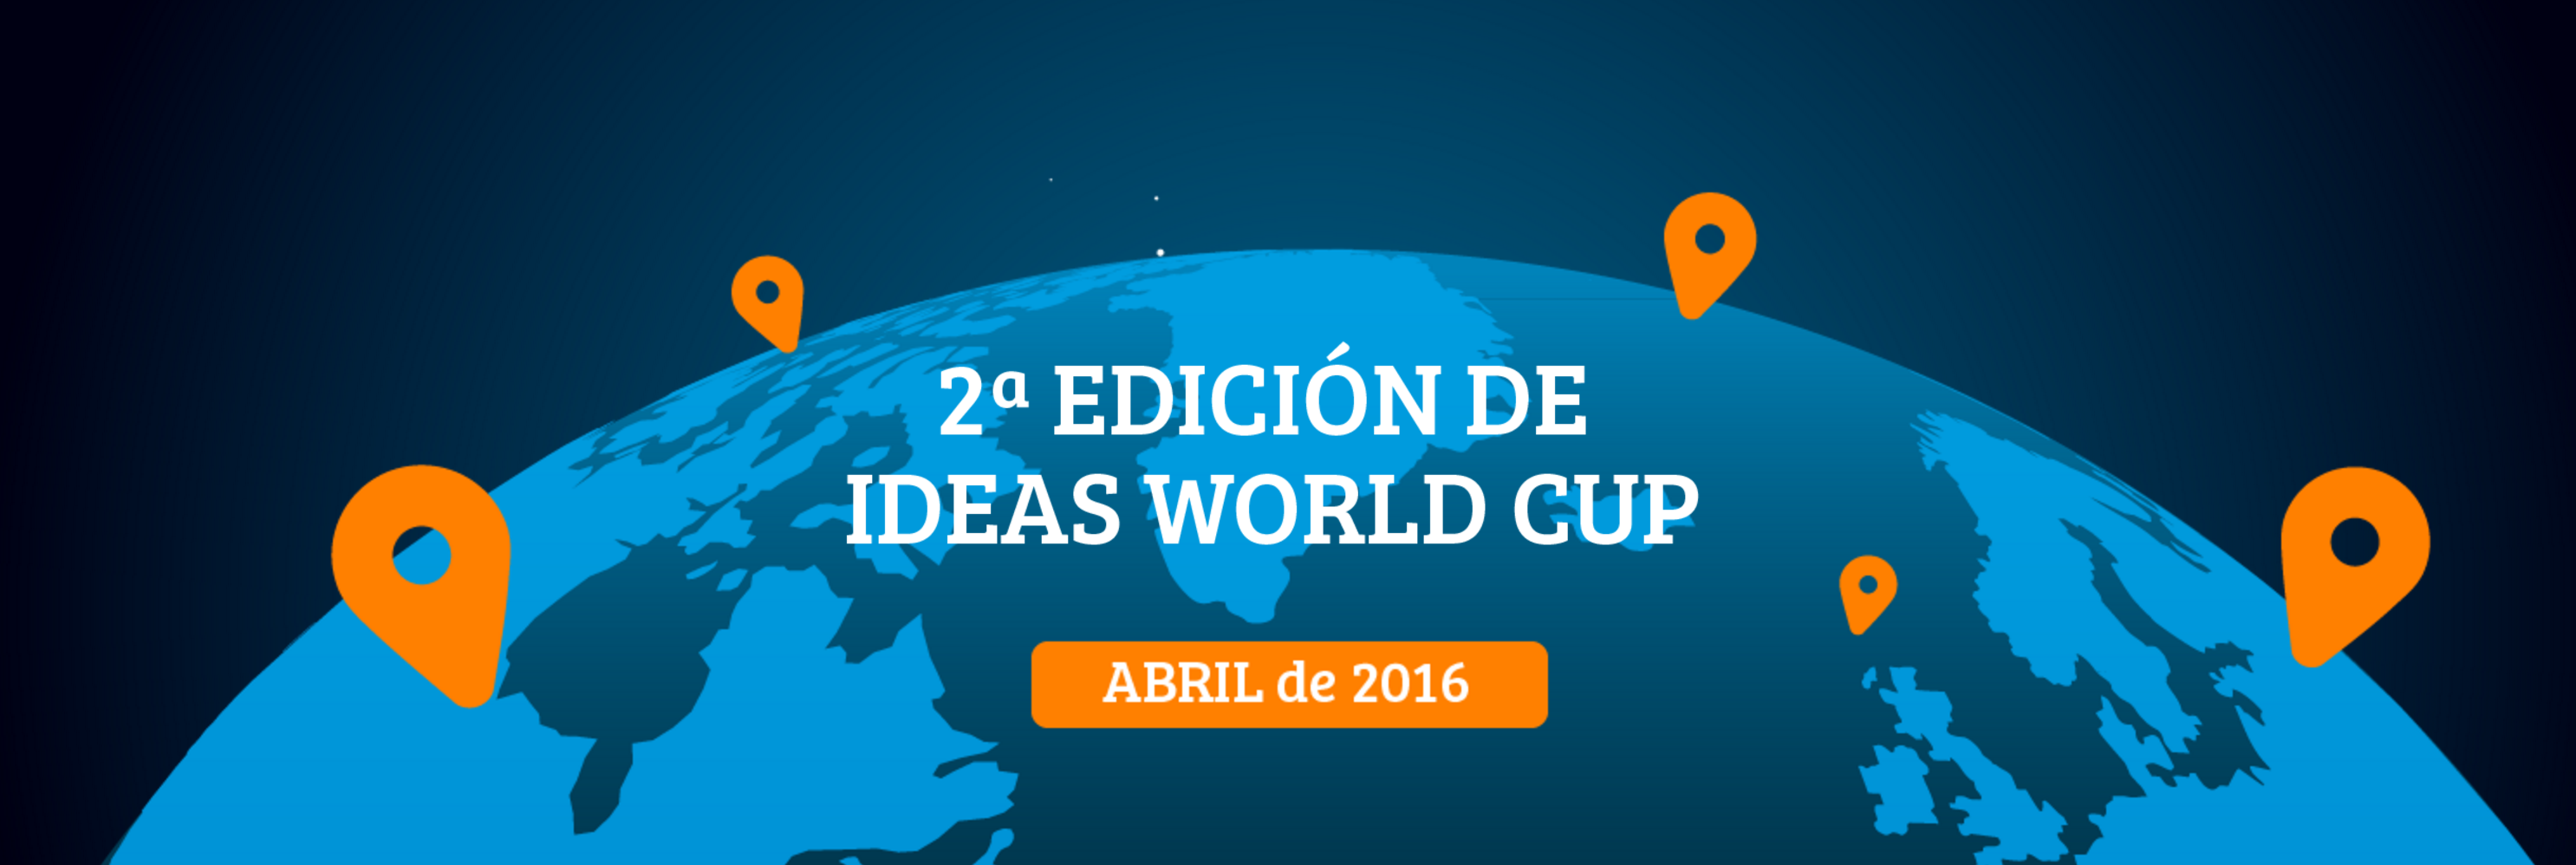 ideas world cup